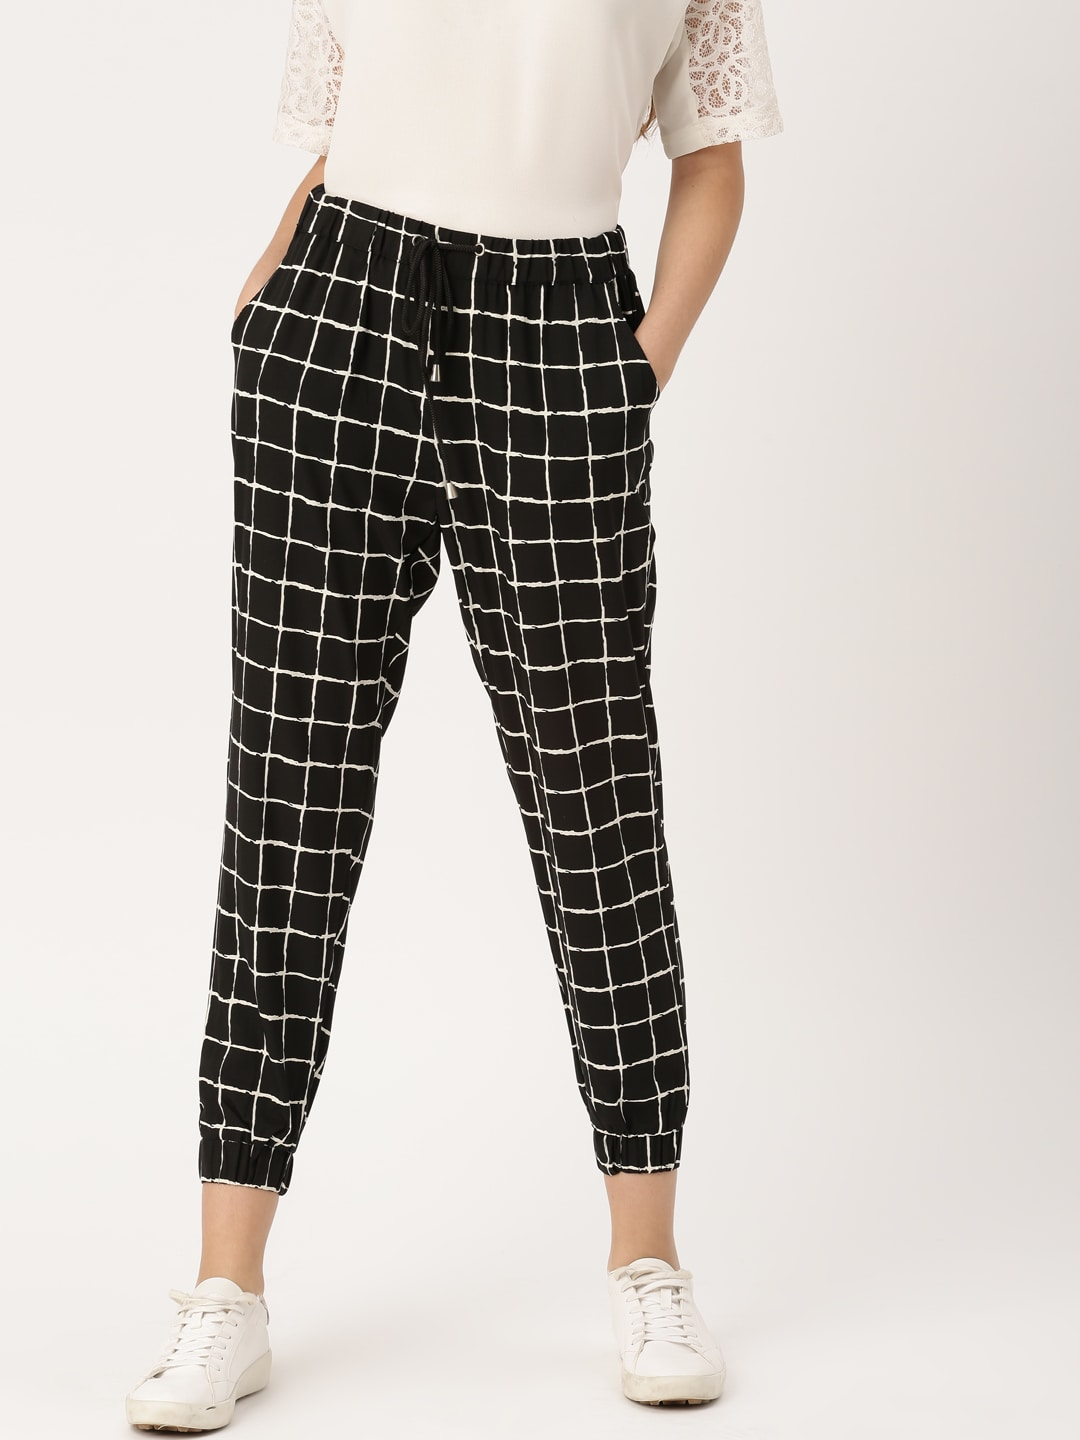 89a2b0b253fe3 Checked Boxers Lounge Trousers - Buy Checked Boxers Lounge Trousers online  in India